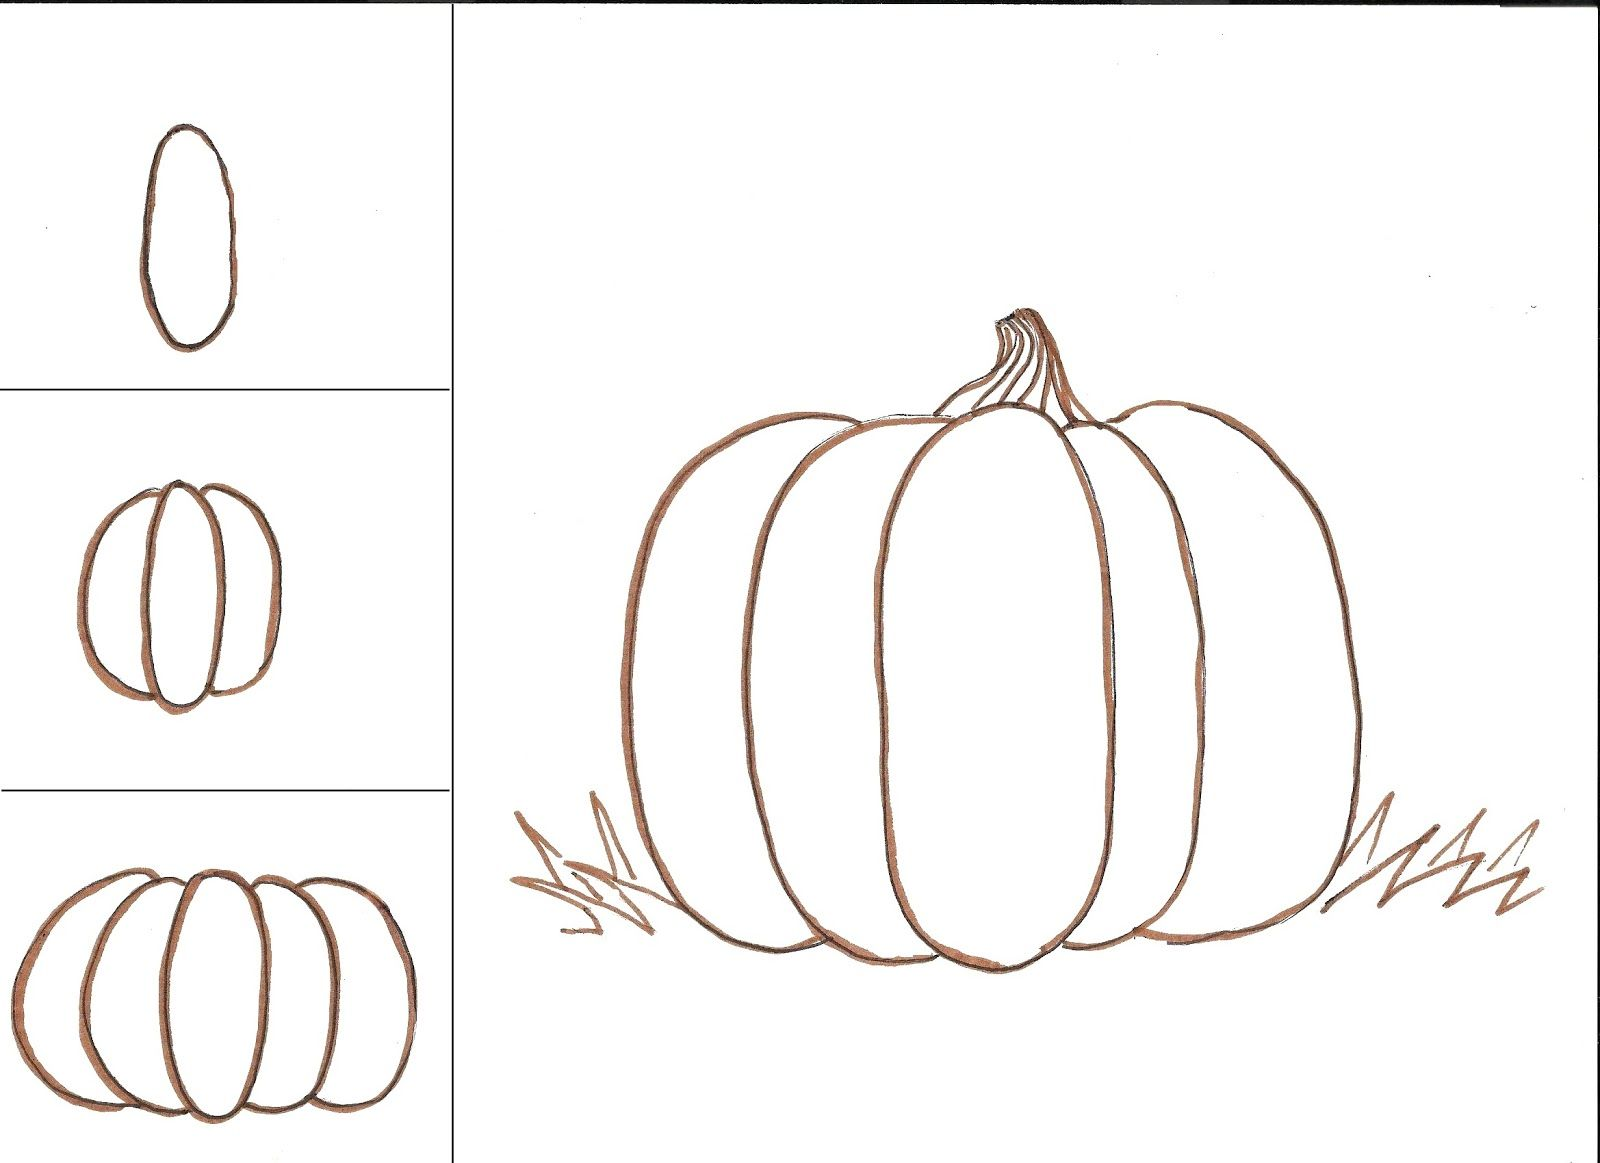 Uncategorized Drawings Of Pumpkins pumpkins art class ideas journal pinterest pumpkin my classes love to draw teach your an easy way make a somewhat rea